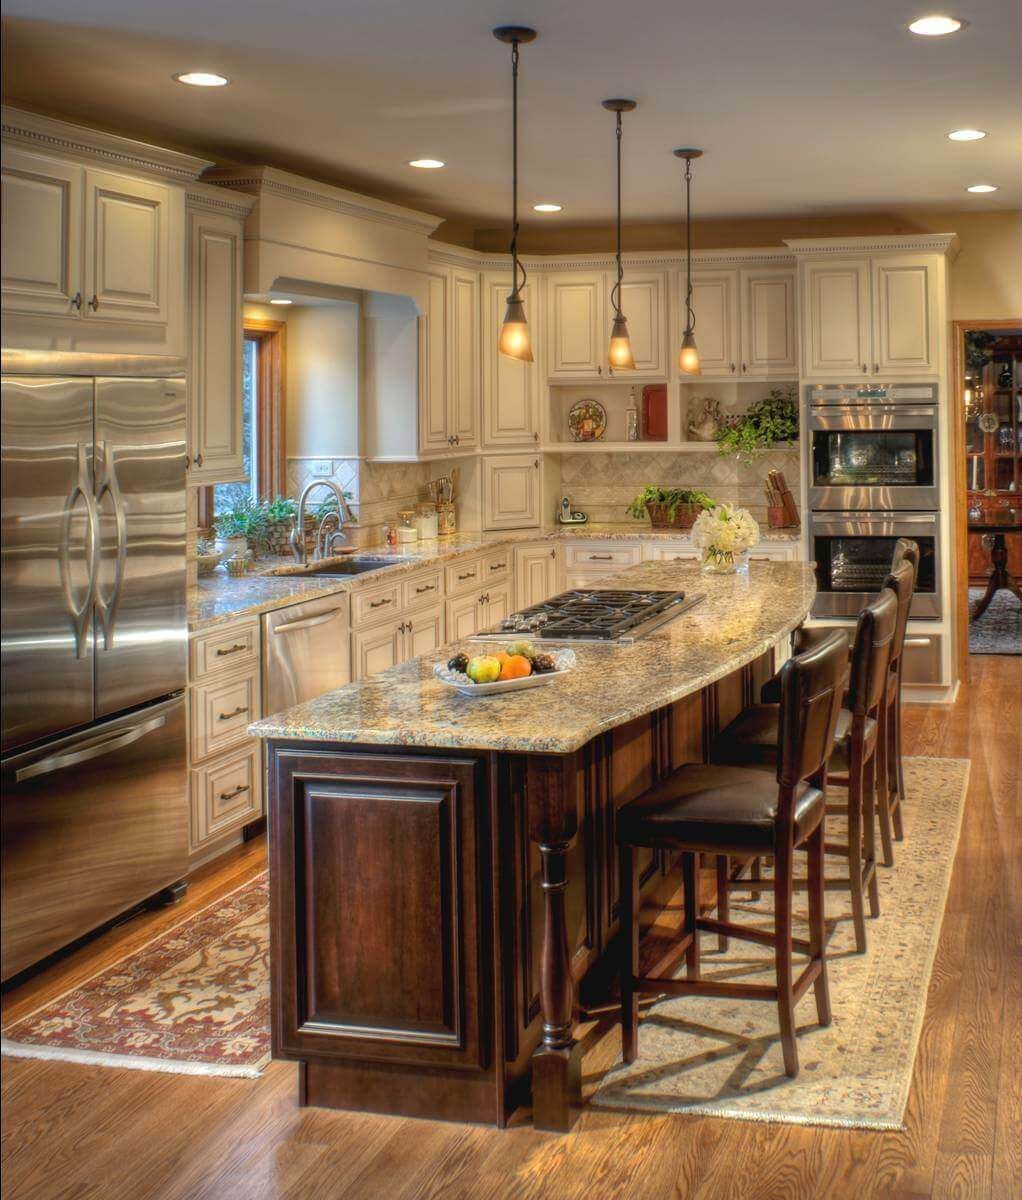 68+Deluxe Custom Kitchen Island Ideas (Jaw Dropping Designs) #remodelingorroomdesign